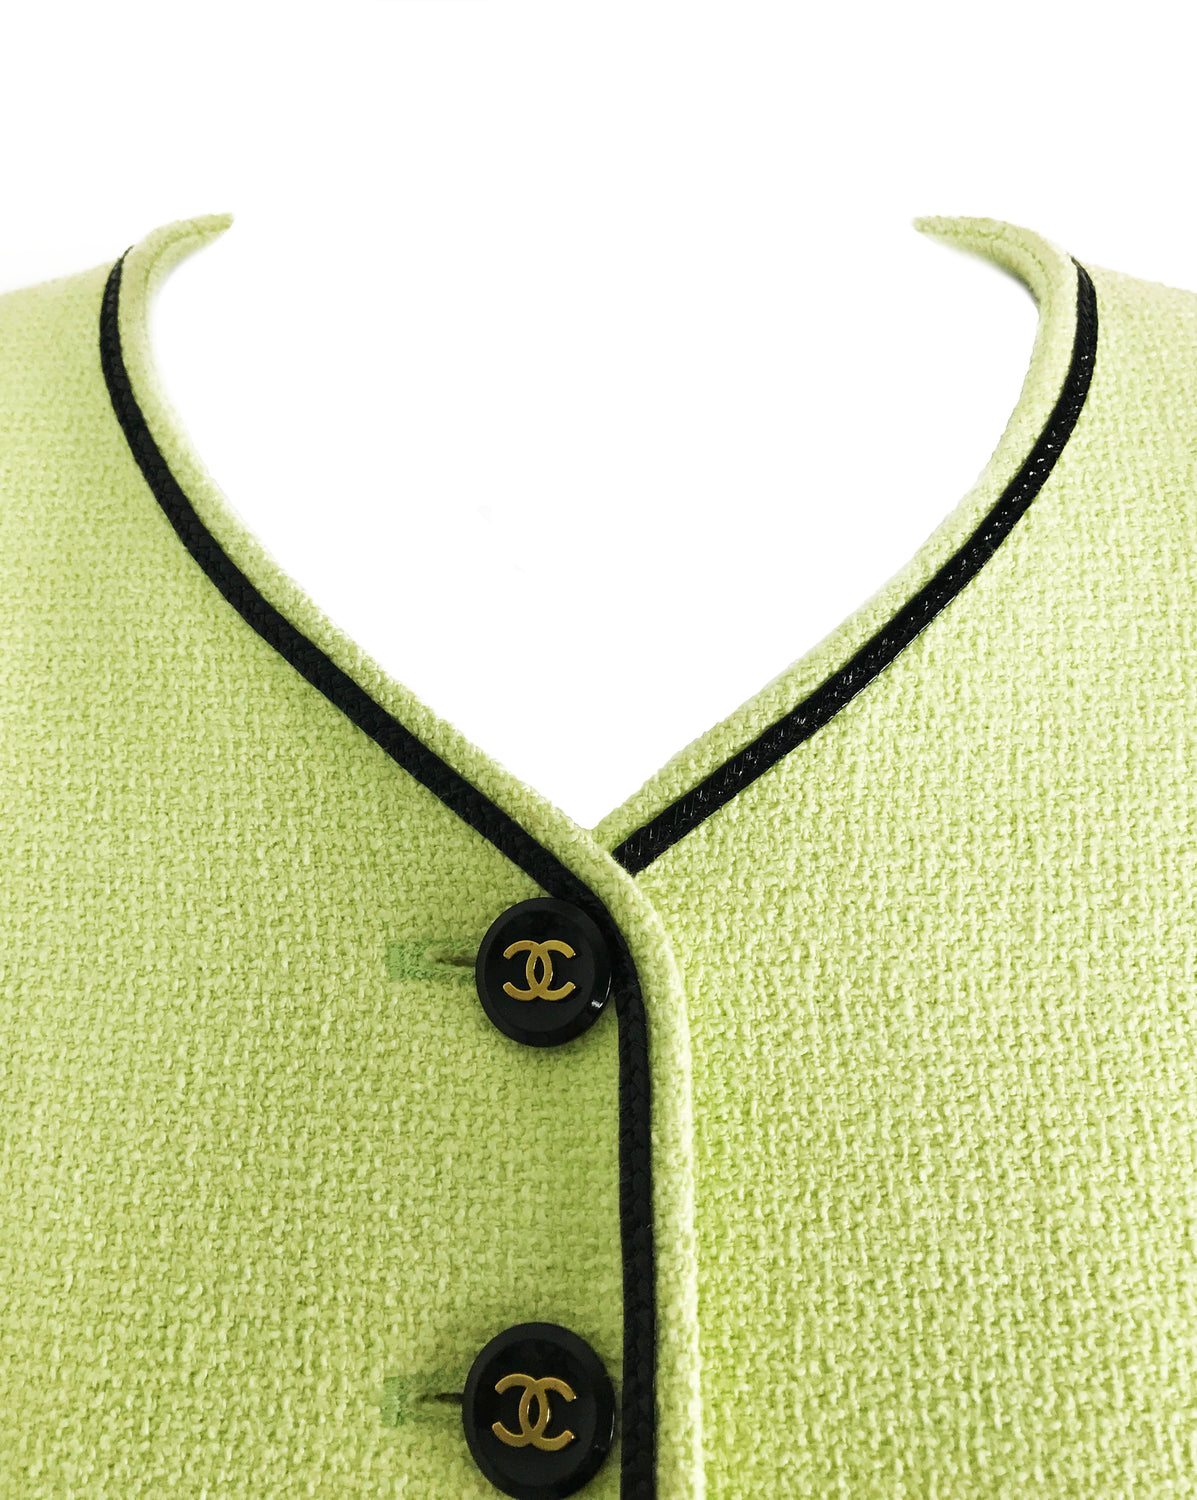 FRUIT Vintage Chanel iconic 1995 Green Boucle Cropped Jacket Karl Lagerfeld